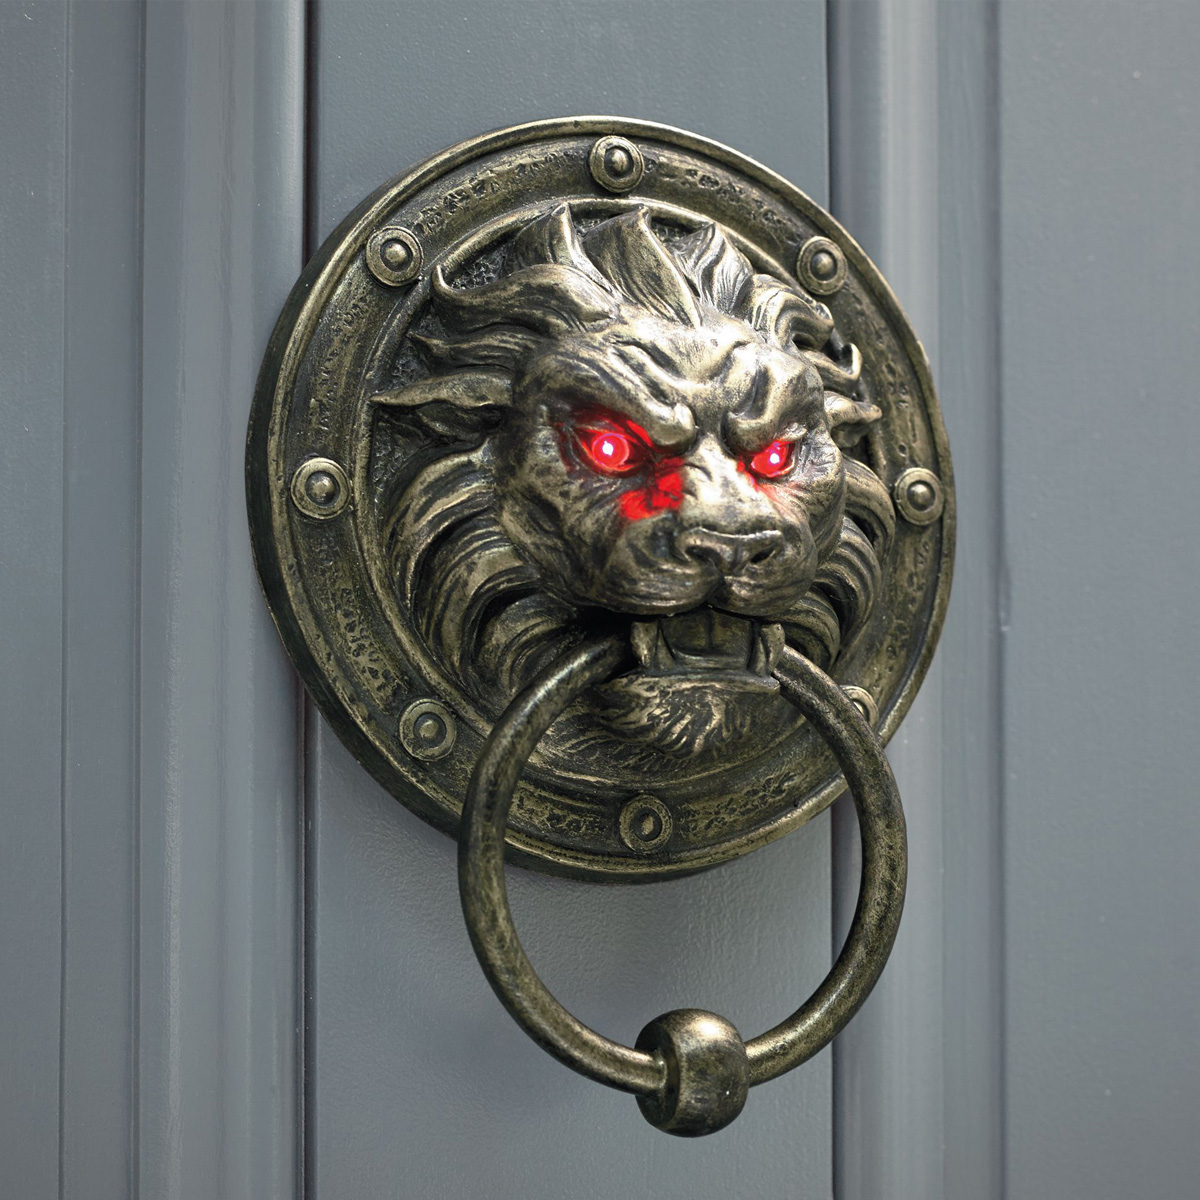 Where To Buy Door Knockers Creepy Lion Door Knocker With Glowing Eyes The Green Head